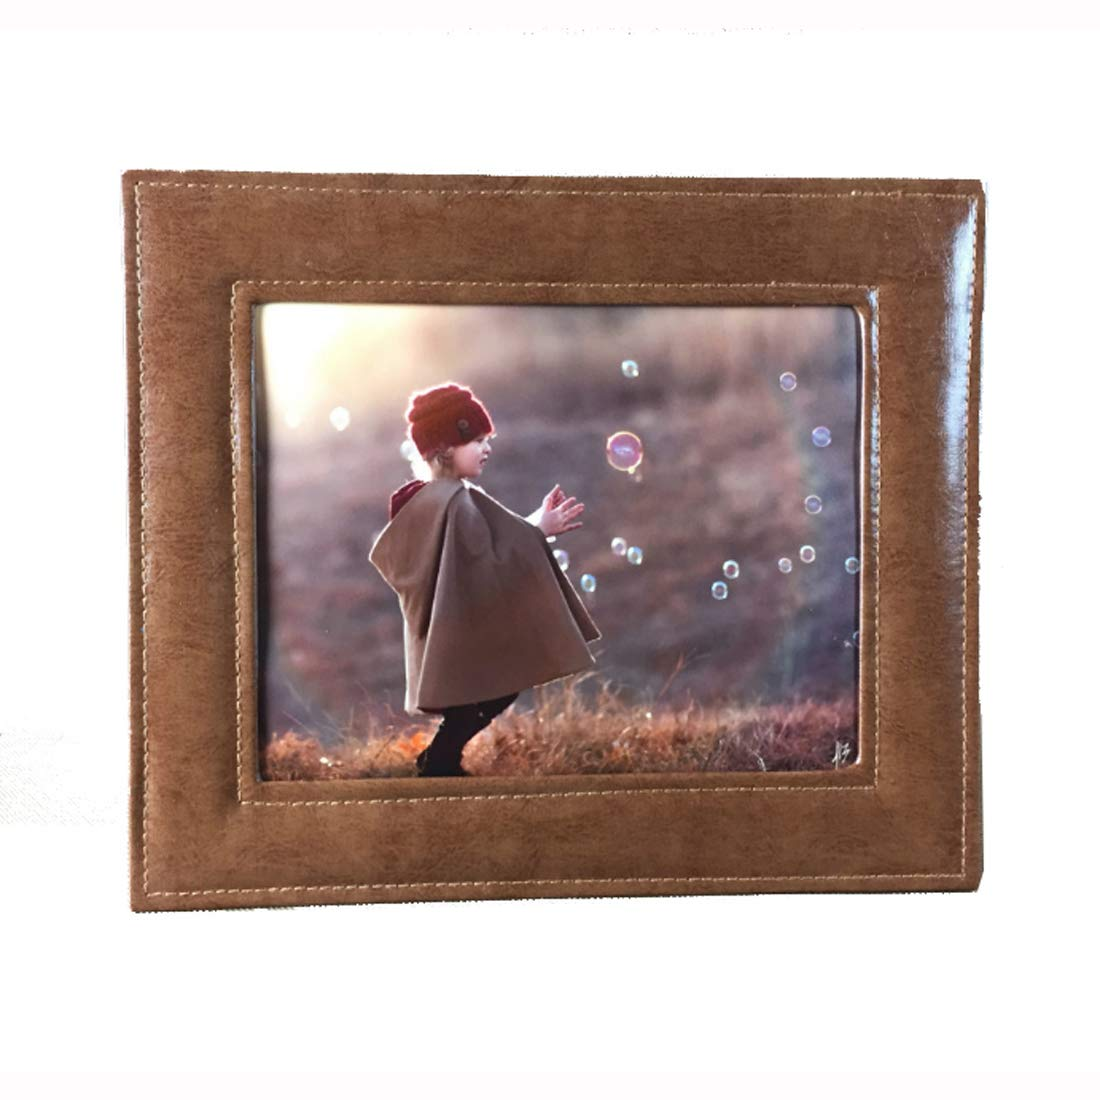 SIKOO Picture Frames 5x7 Family Baby Boys Girls Leather Photo Frame For Home Decoration, Tabletop/Desktop Vertical and Horizontal Included Brown